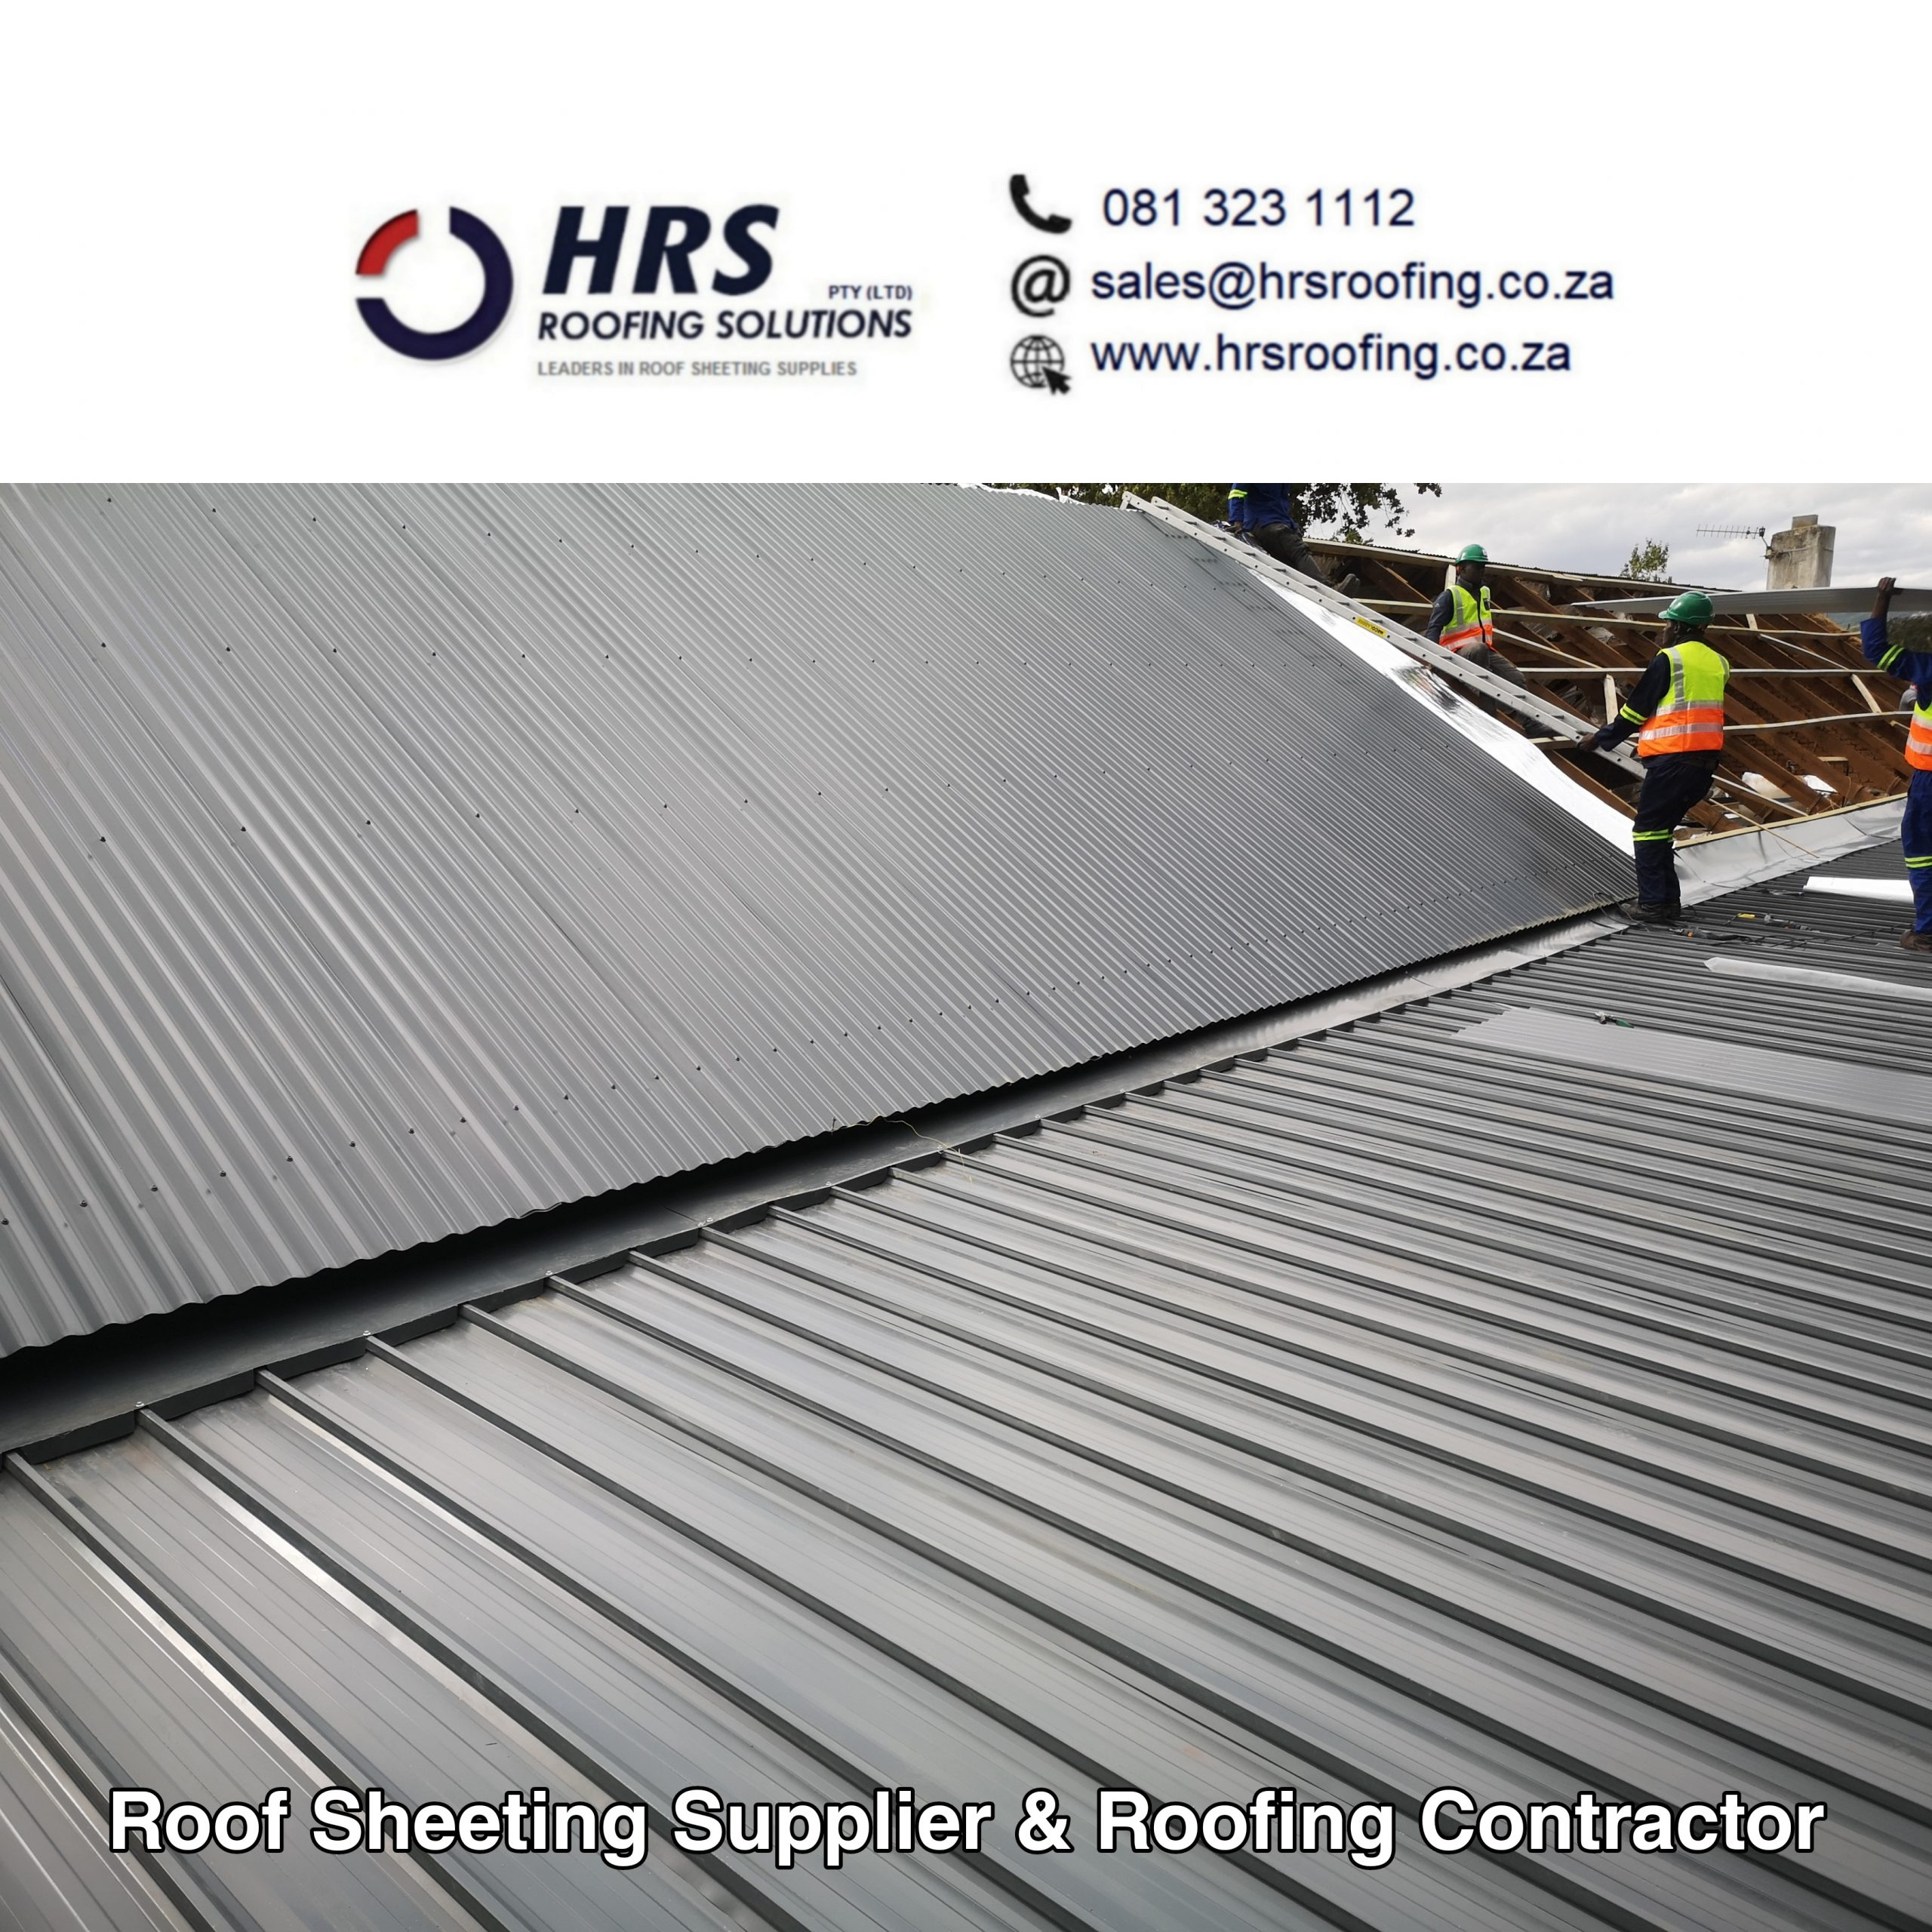 HRS ROOFING SOLUTIONS roofing contractors and services in Paarl, Somerset west4